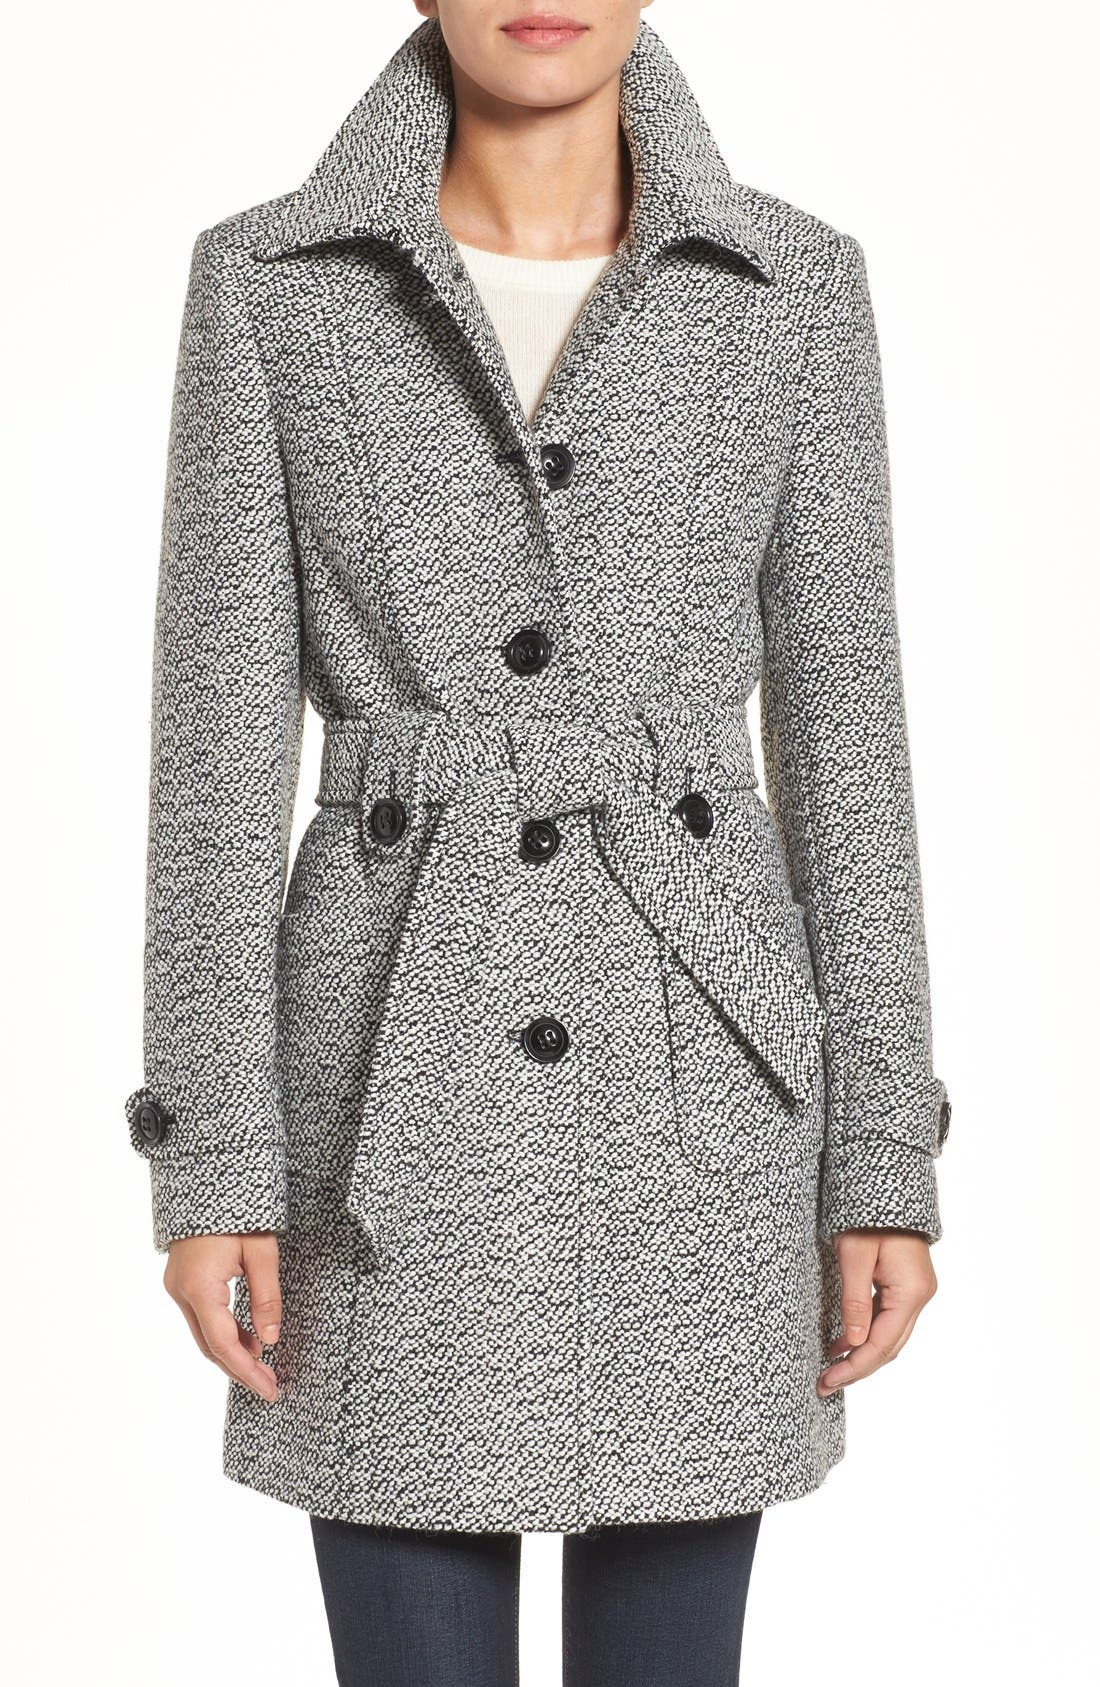 Alternate Image 1 Selected - Gallery Belted Tweed Coat (Regular & Petite)